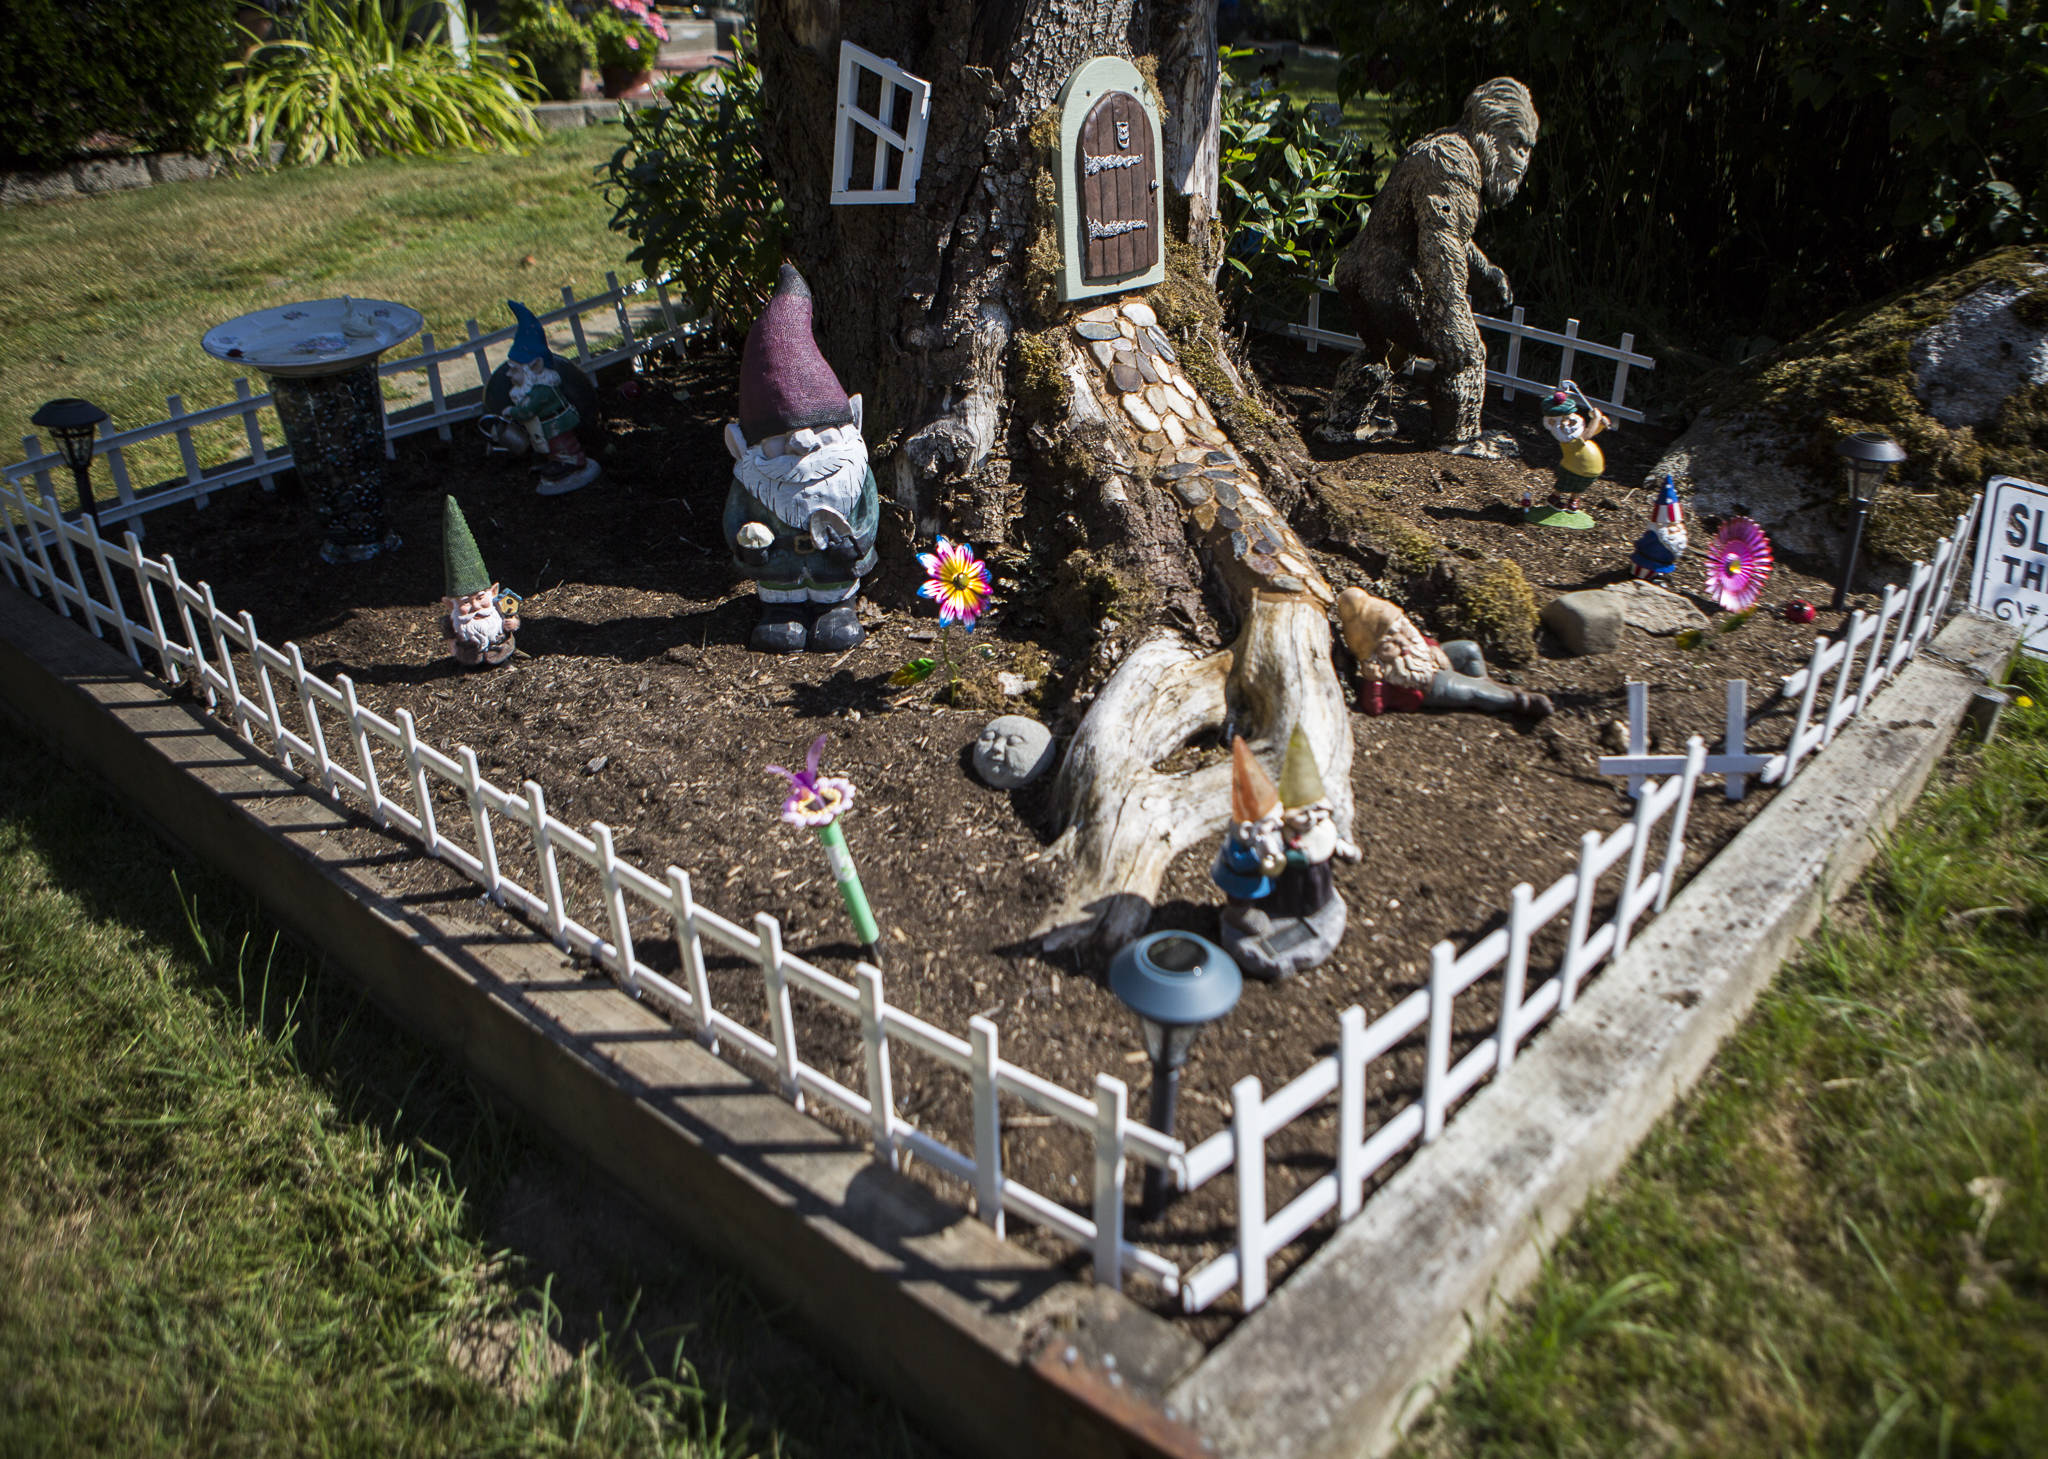 A gnome-size fenced yard surrounds the Cogswells' creation. (Olivia Vanni / The Herald)